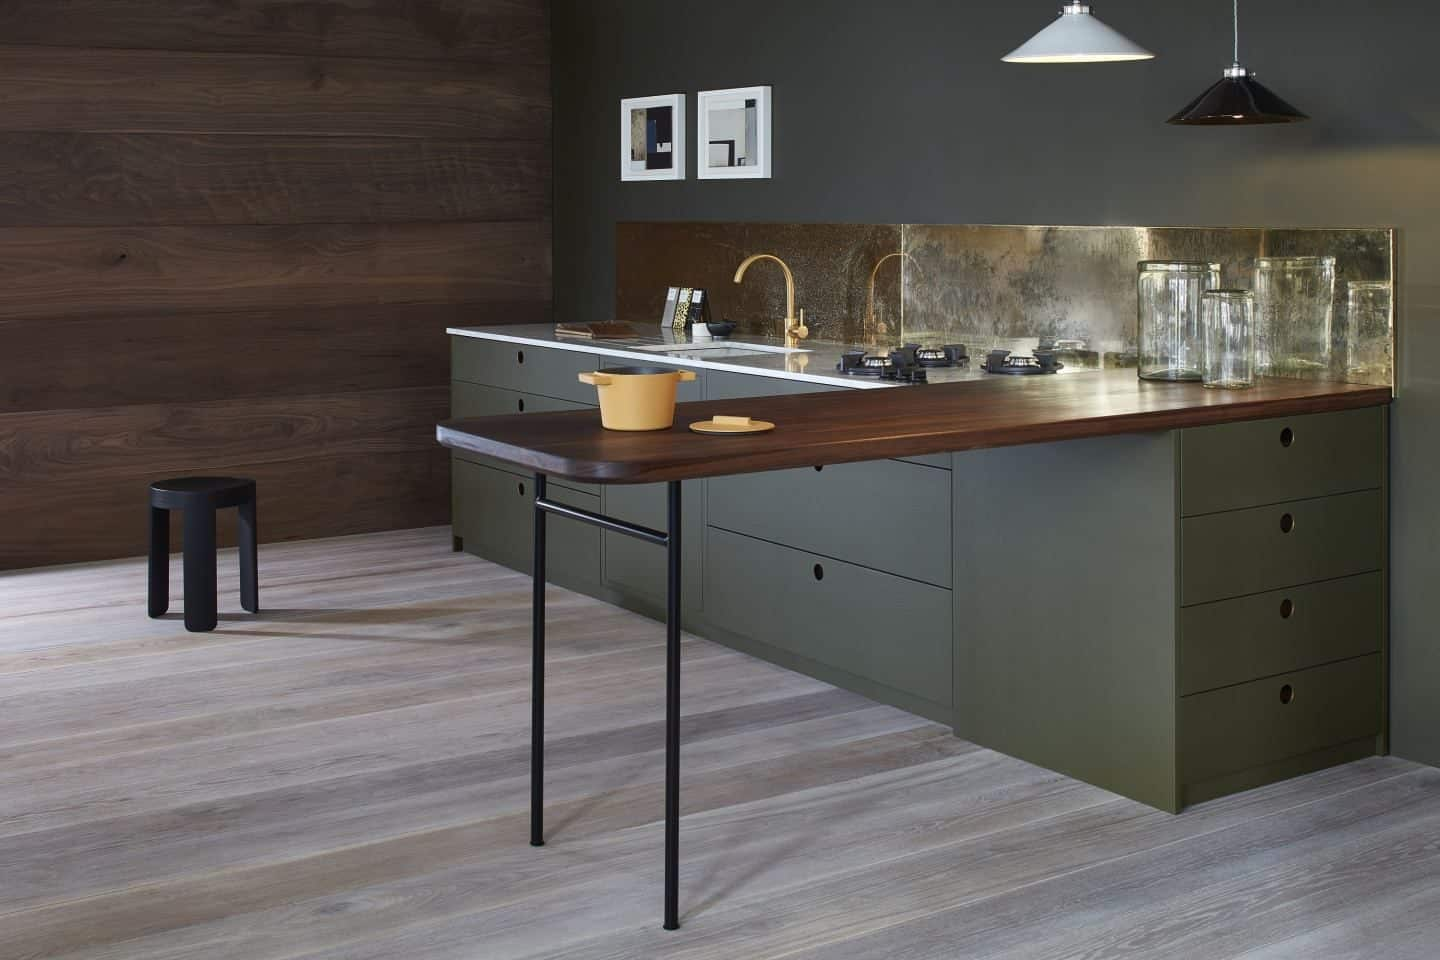 Naked Kitchens - The Ladbroke kitchen in dark green with gold accents sml